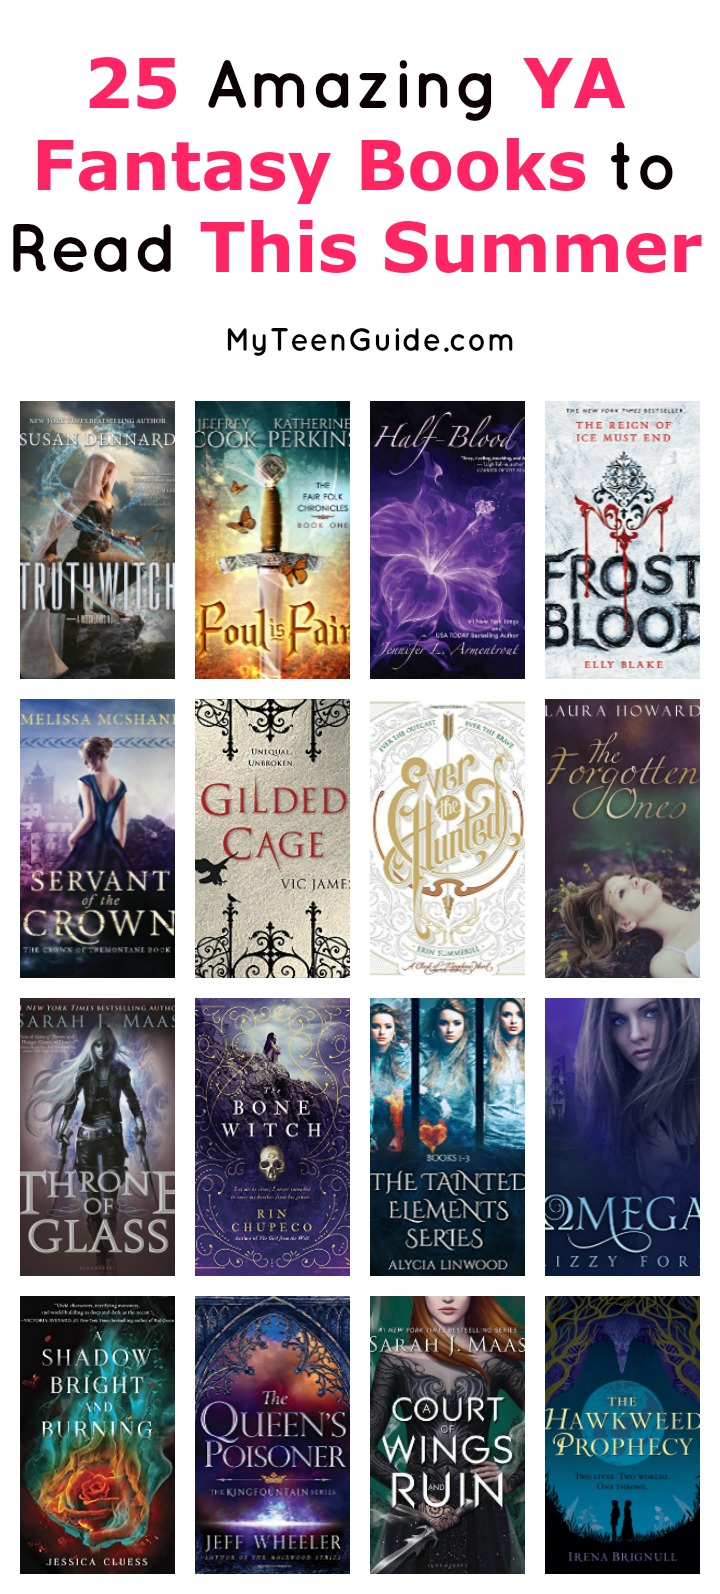 Pad your summer reading list with these X must-read YA fantasy books that beg to be read late into the night! Check them out!